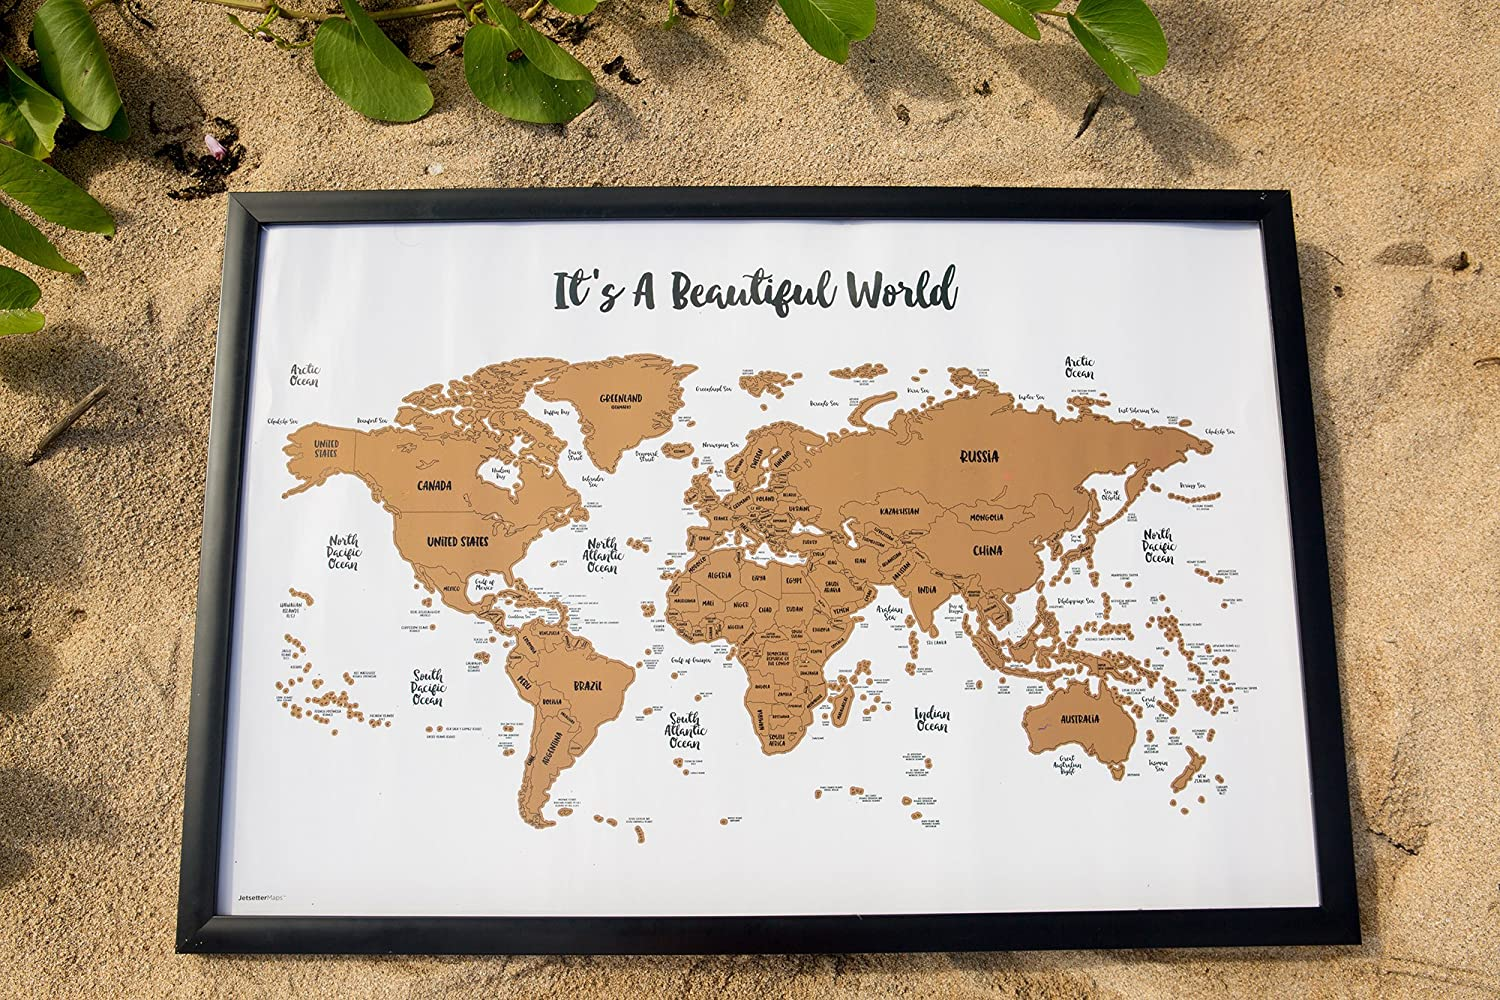 Jetsettermaps its a beautiful world scratch your travelstm jetsettermaps its a beautiful world scratch your travelstm world map 30x20in amazon home kitchen gumiabroncs Choice Image